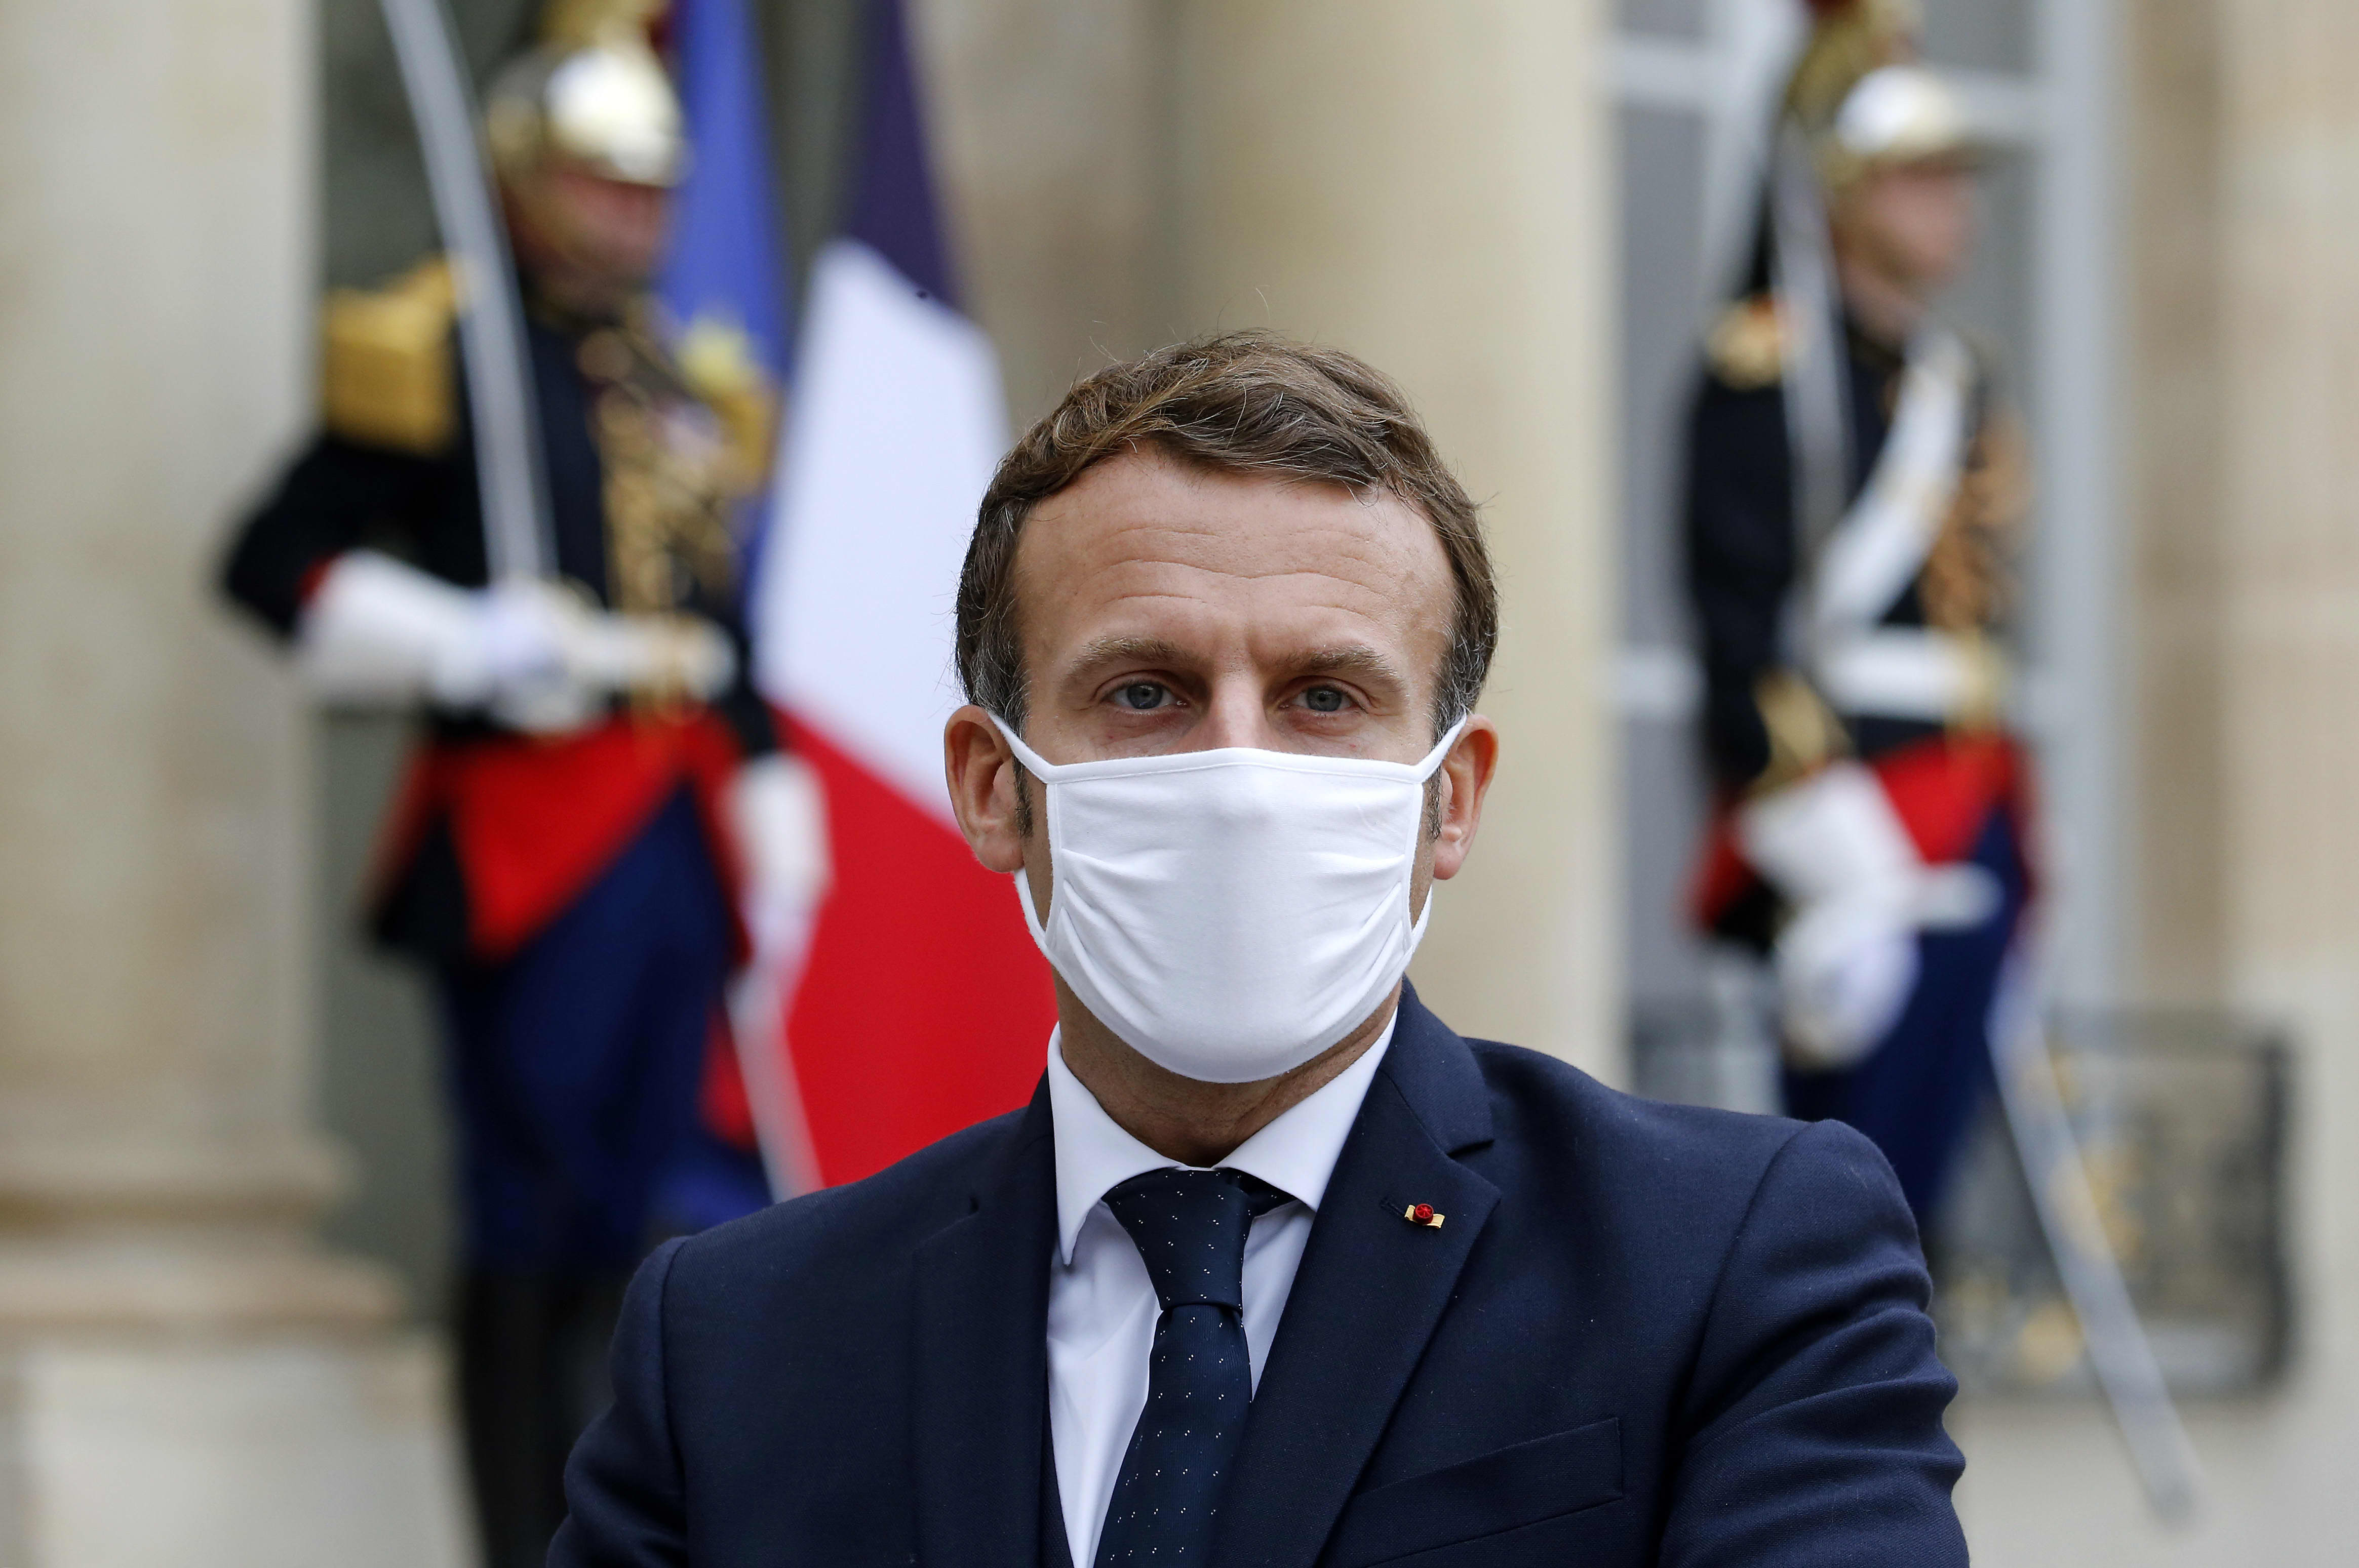 French President Emmanuel Macron Tests Positive For Covid